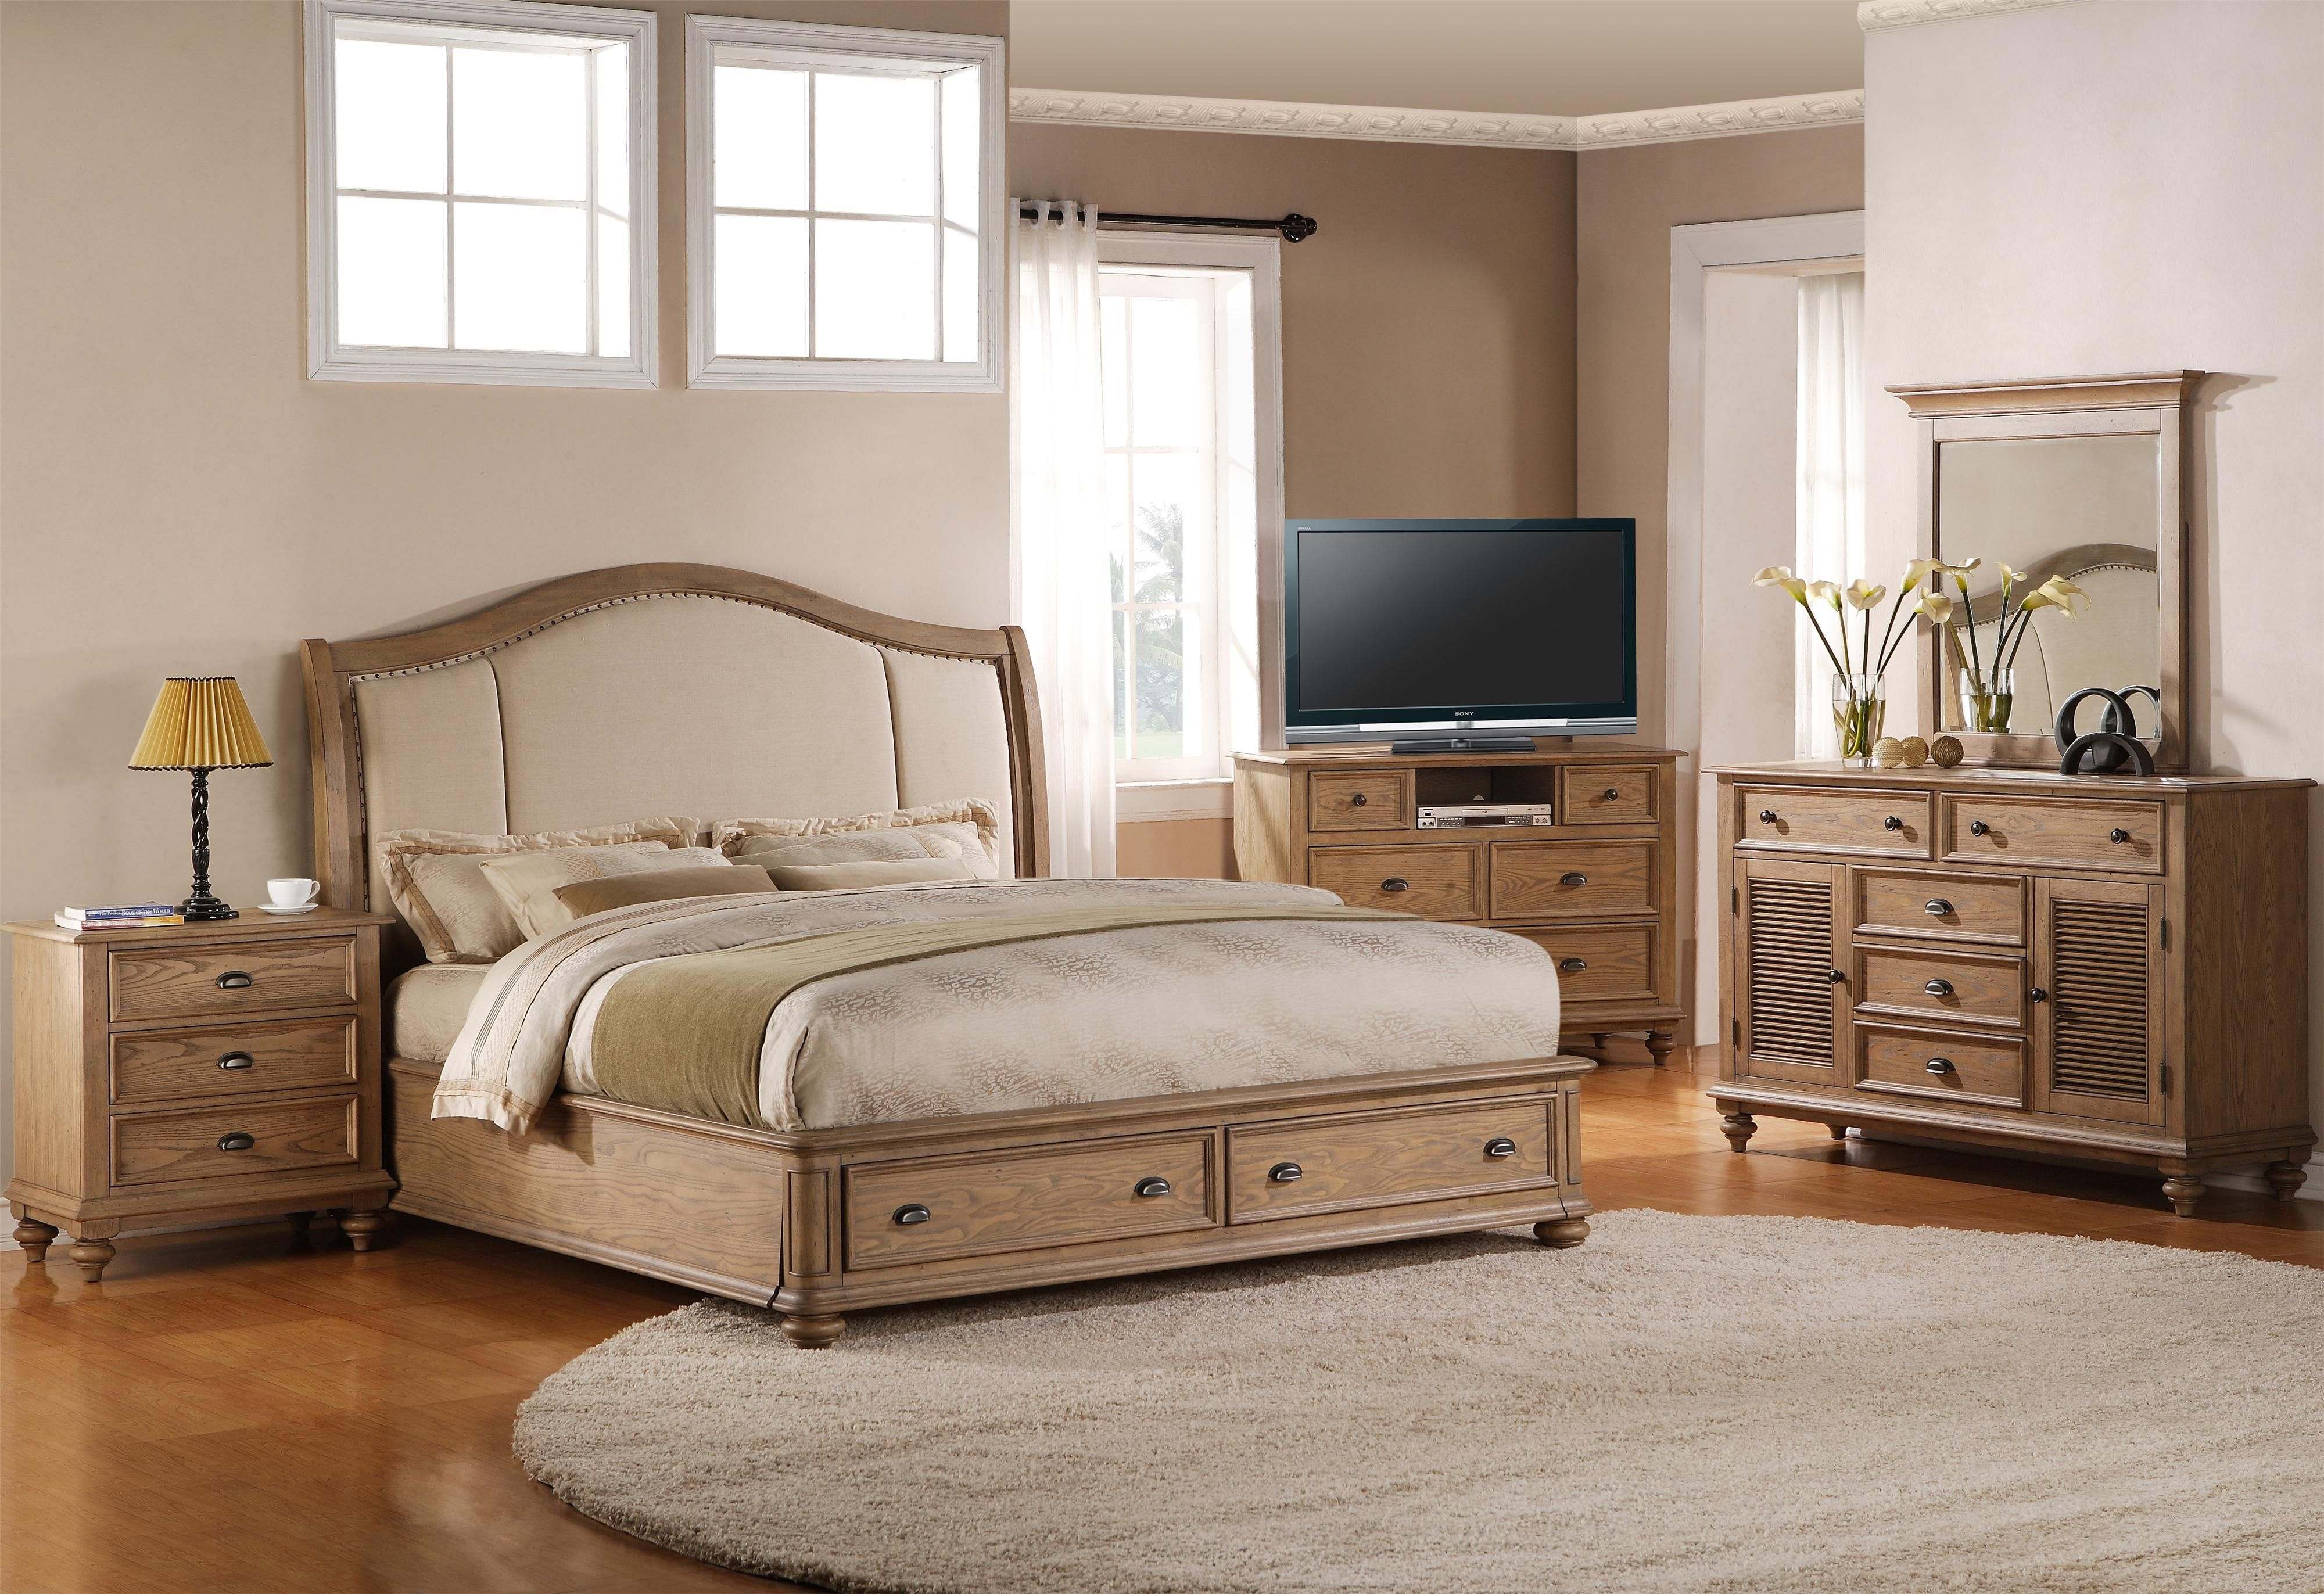 Full Queen Upholstered Headboard Bed With Storage